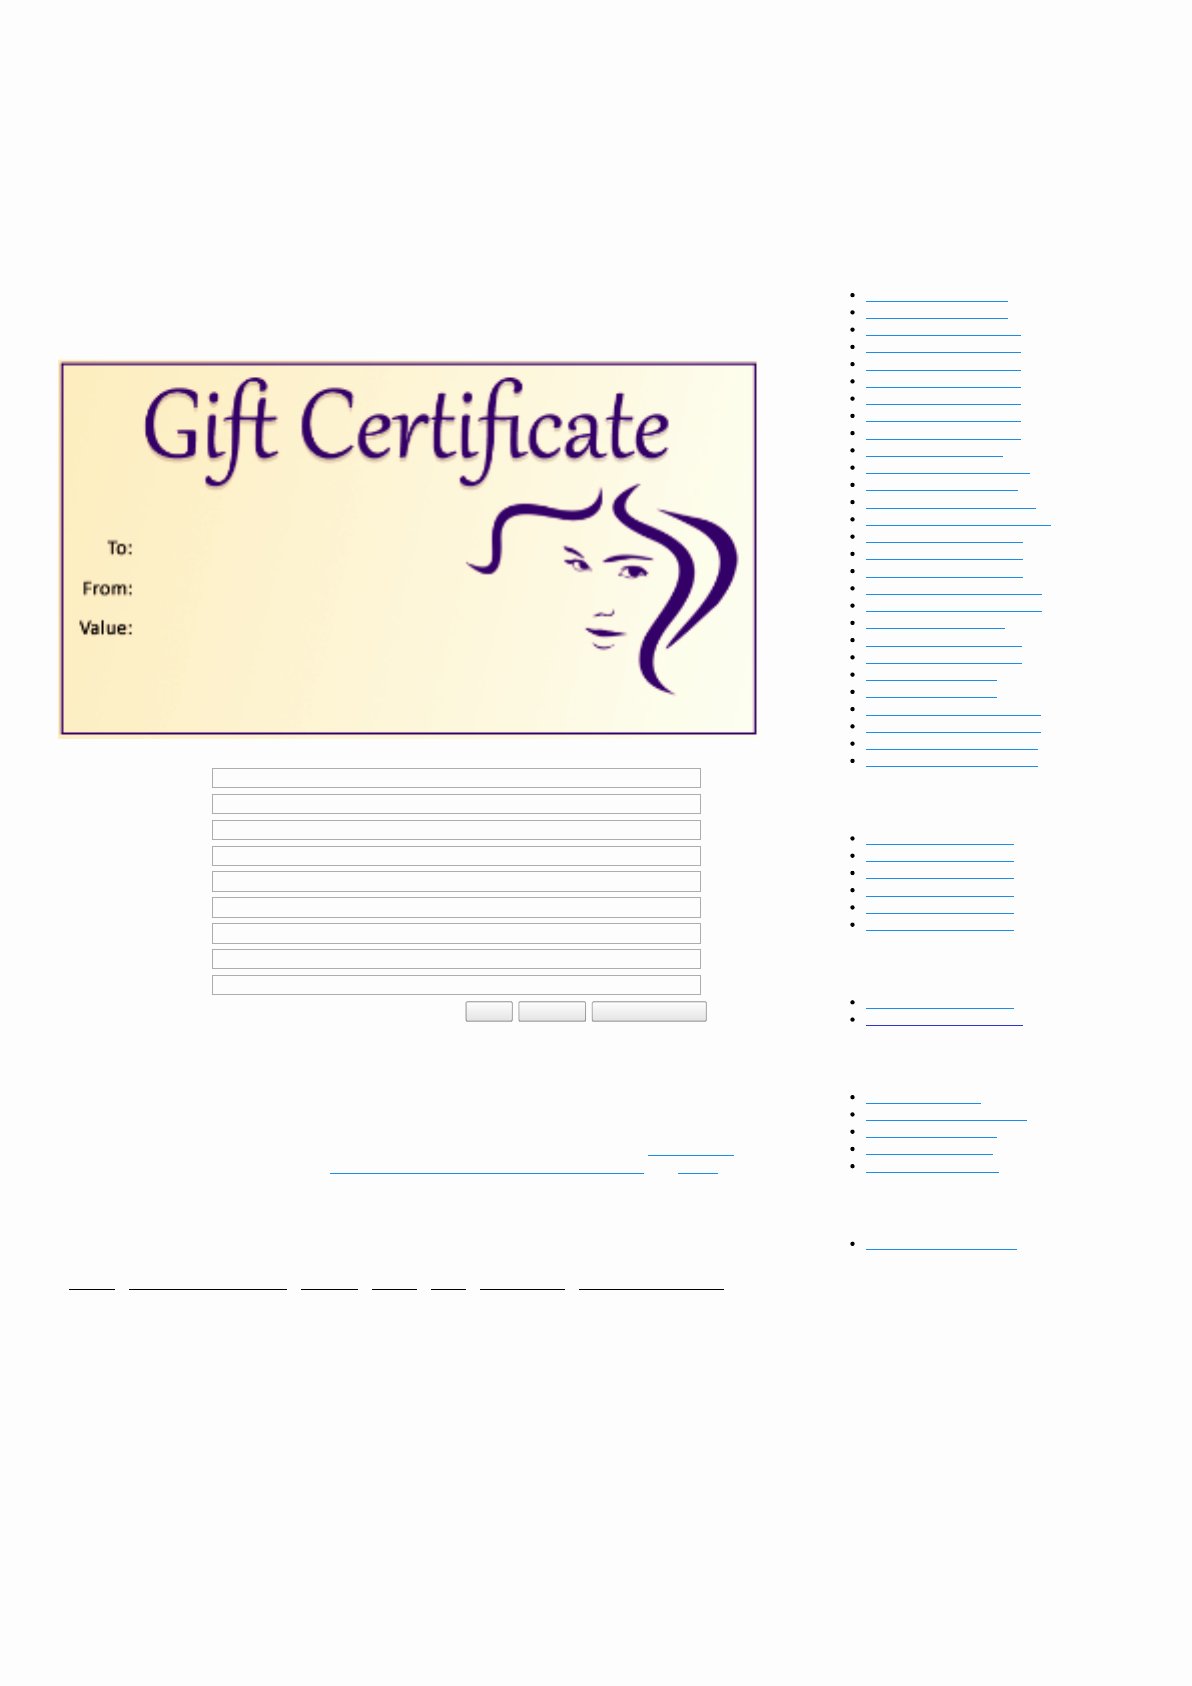 Hair Salon Gift Certificate Templates Awesome Download Hair Salon Gift Certificate Template for Free